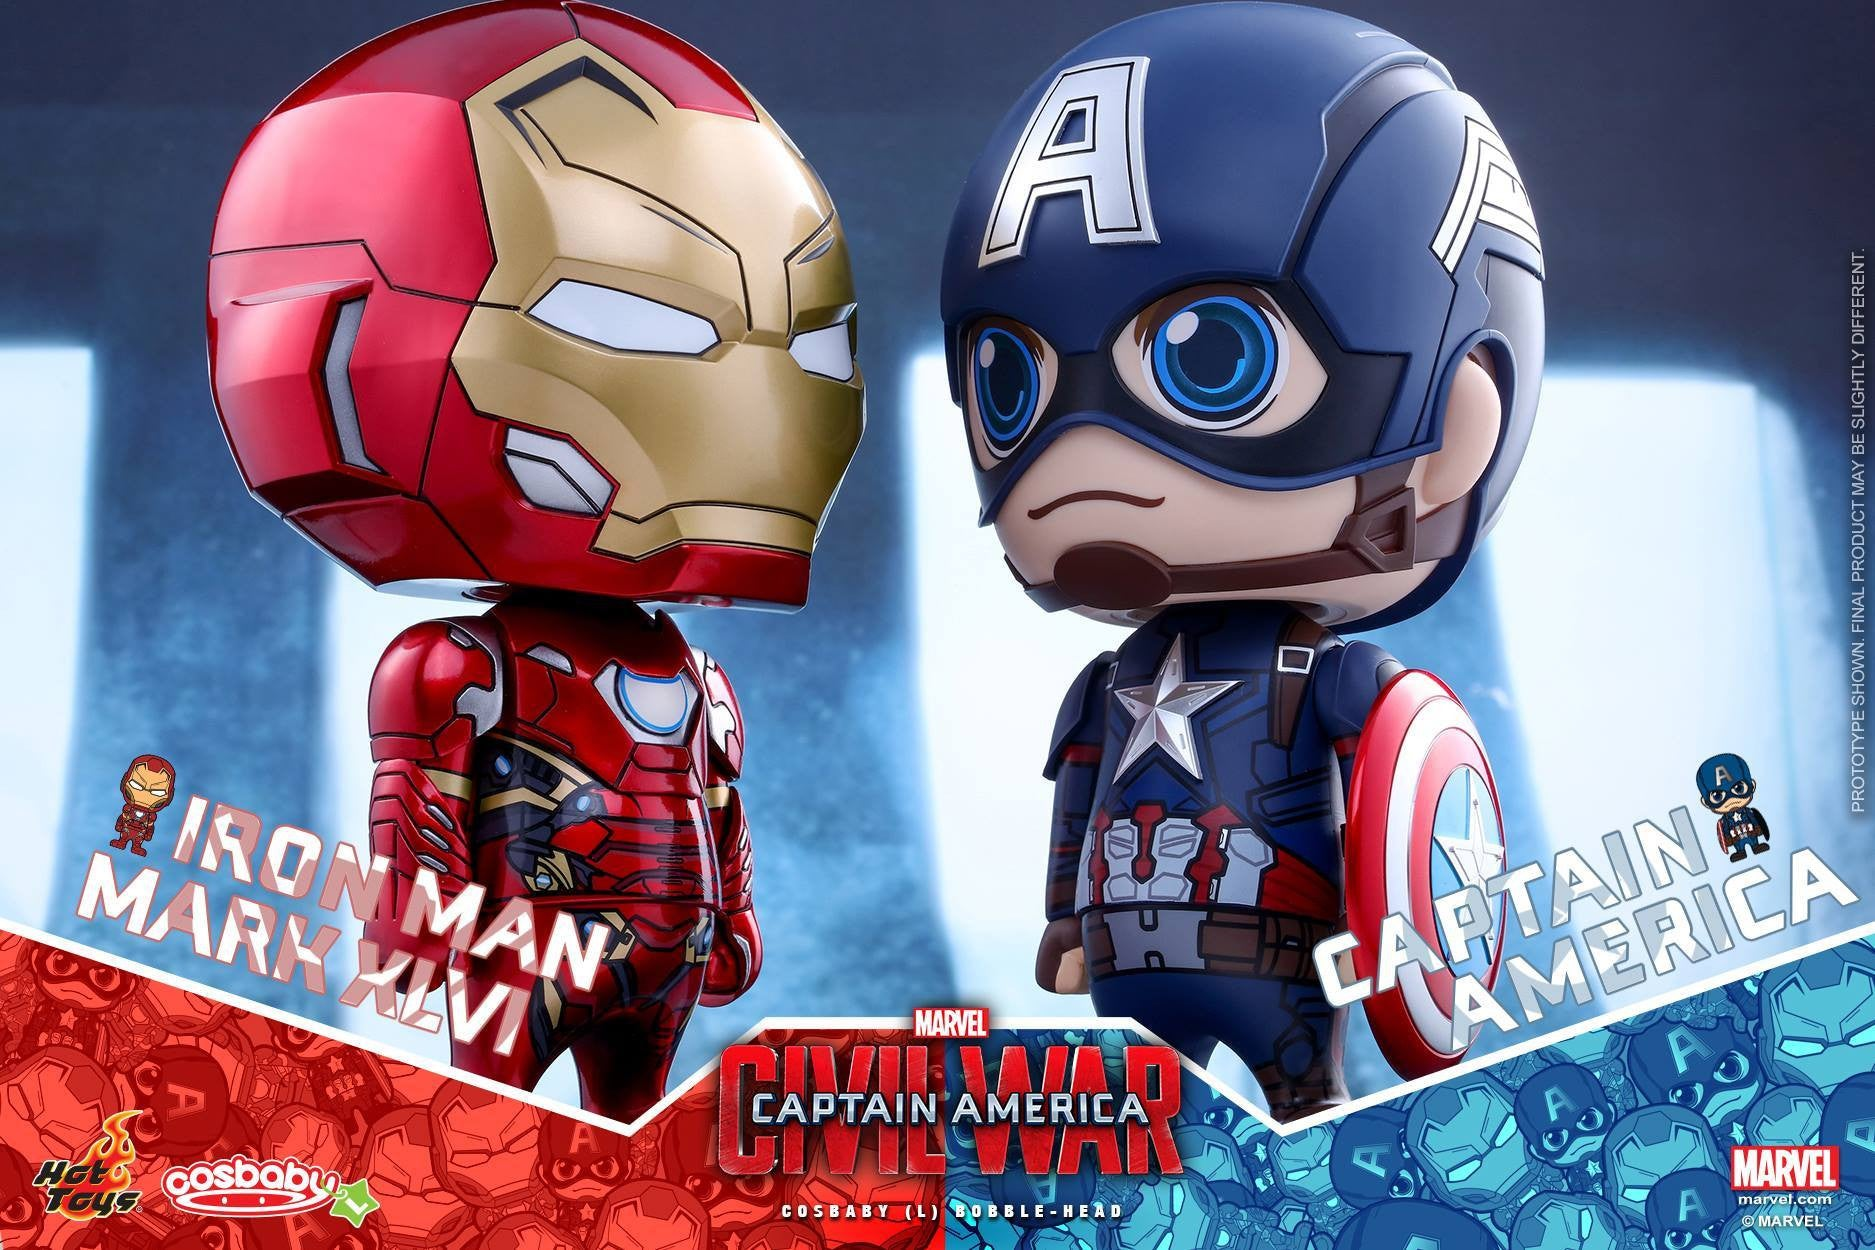 Hot Toys - COSB323 - Captain America: Civil War - Captain America Cosbaby (L) Bobble-Head - Marvelous Toys - 3